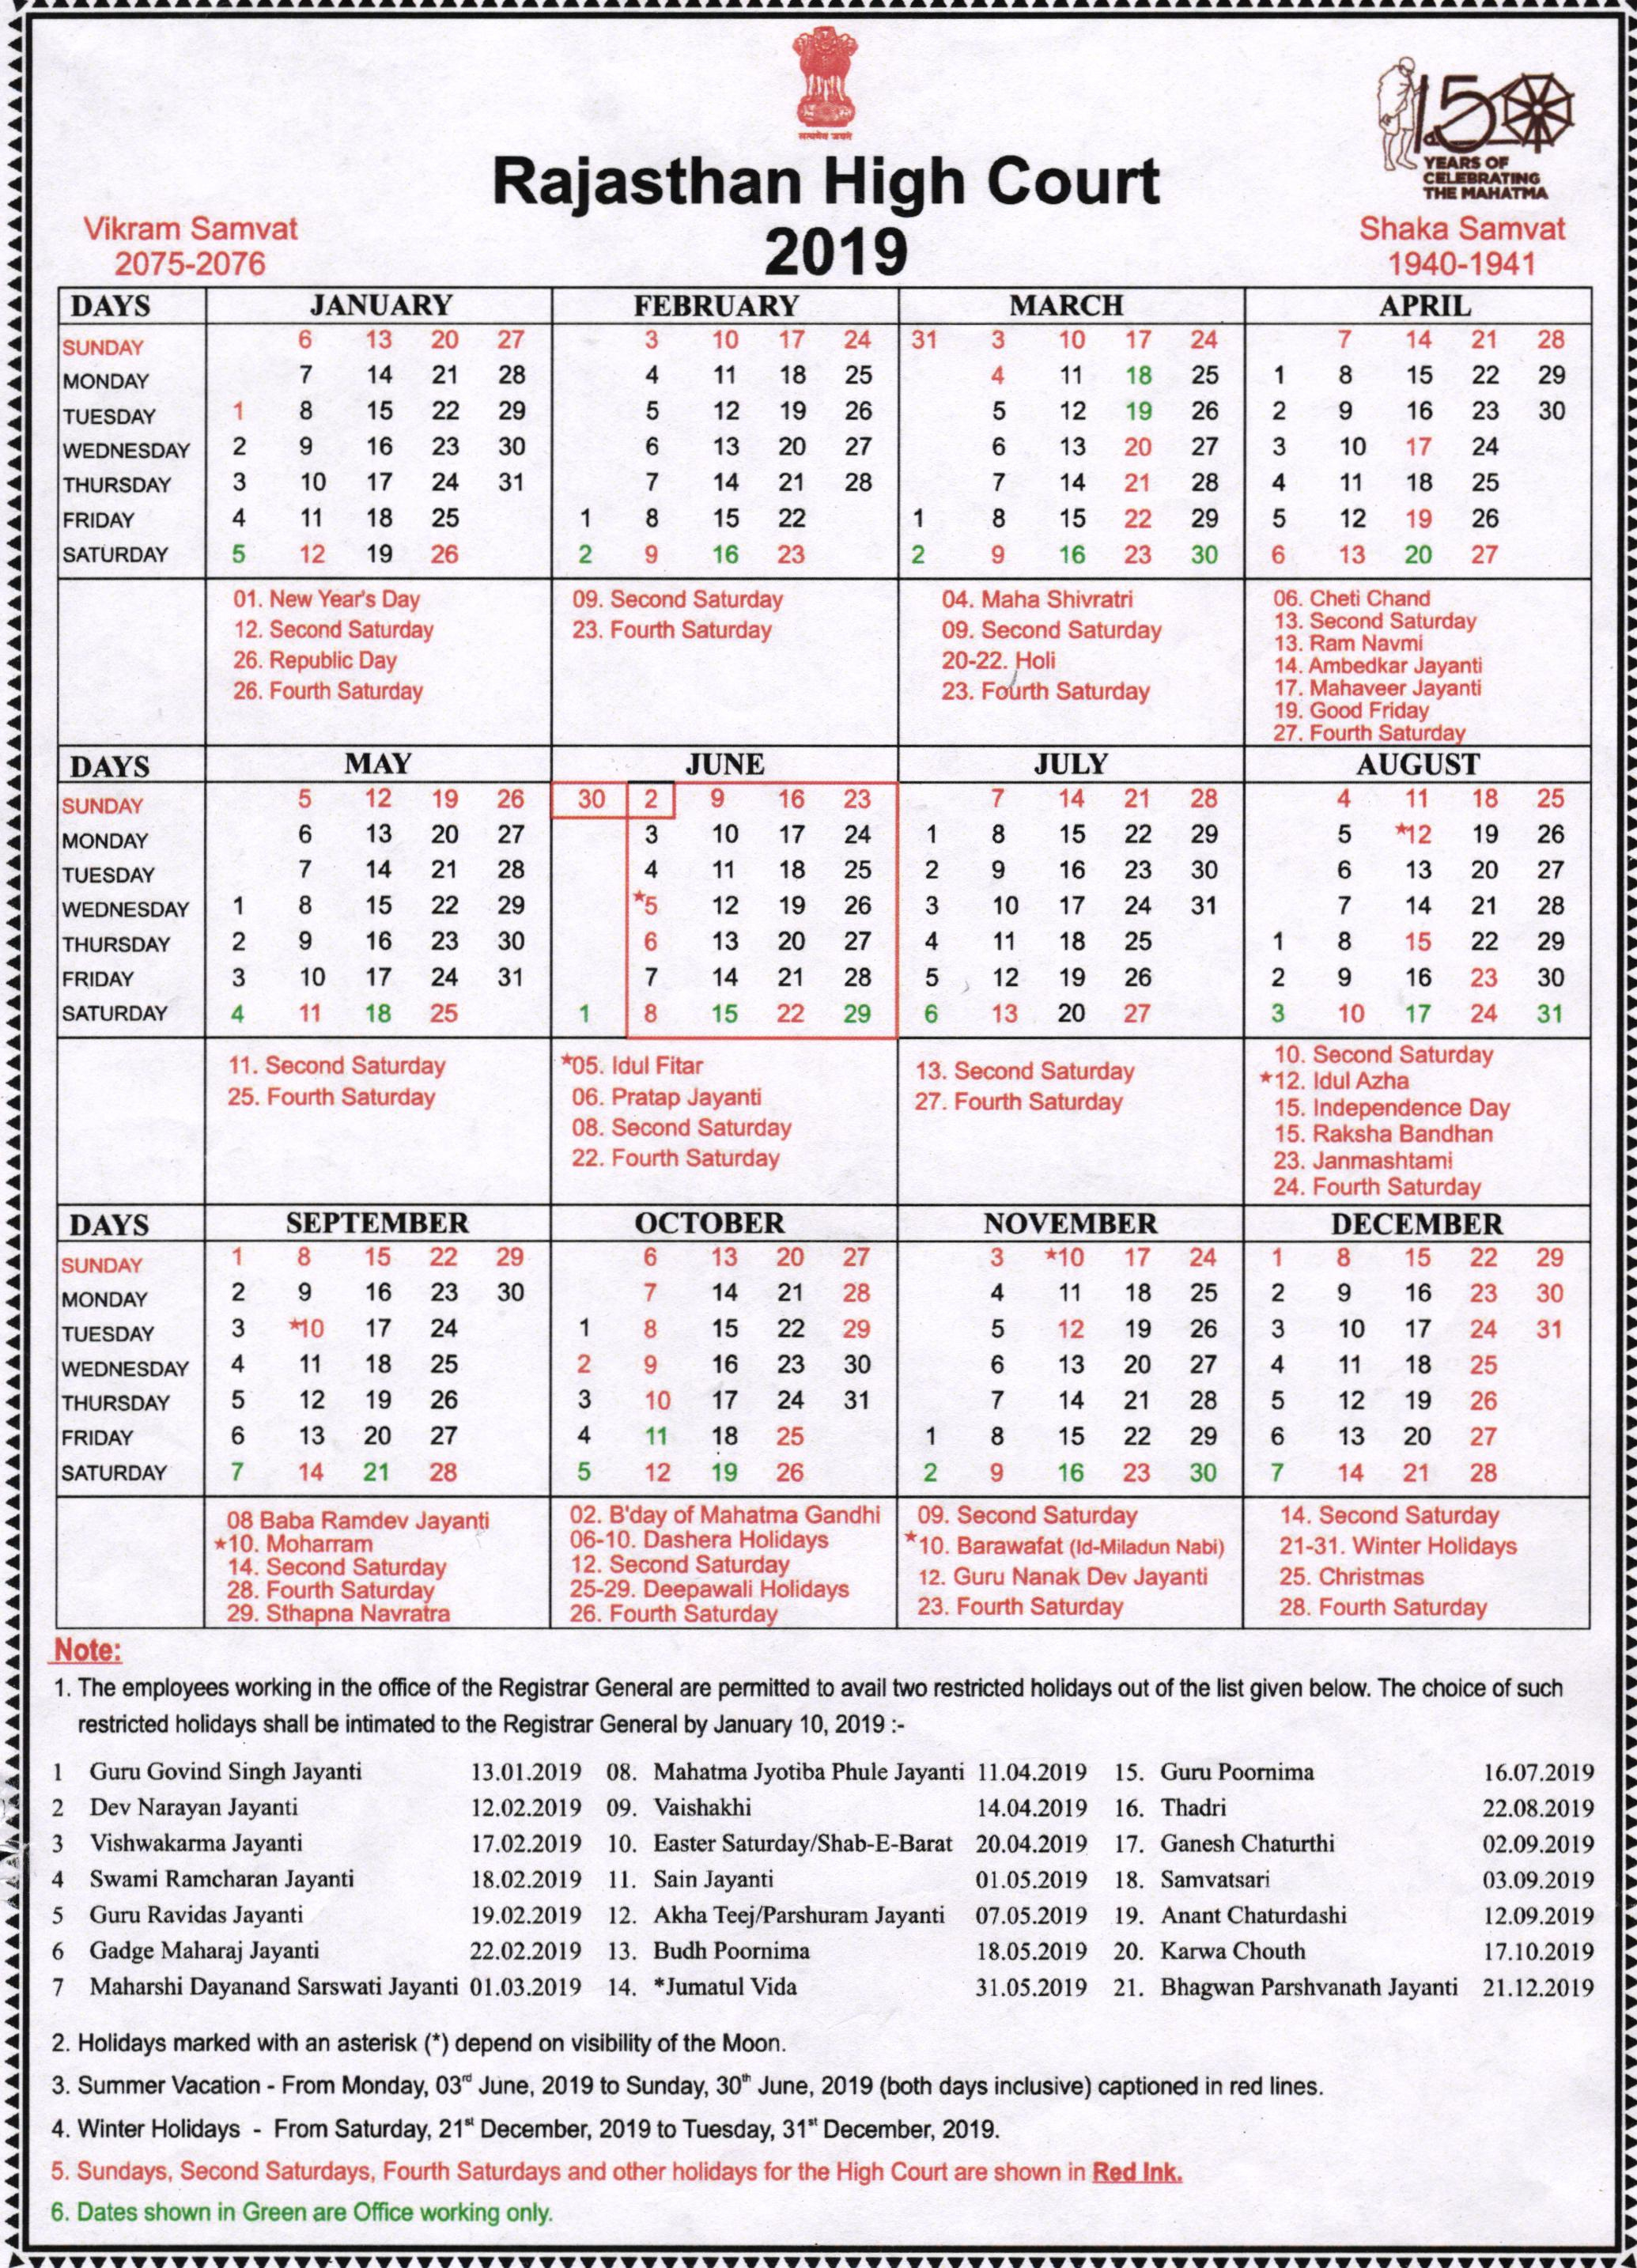 Rajasthan High Court Calendar 2019 with regard to Bihar Govt Calendar 2020